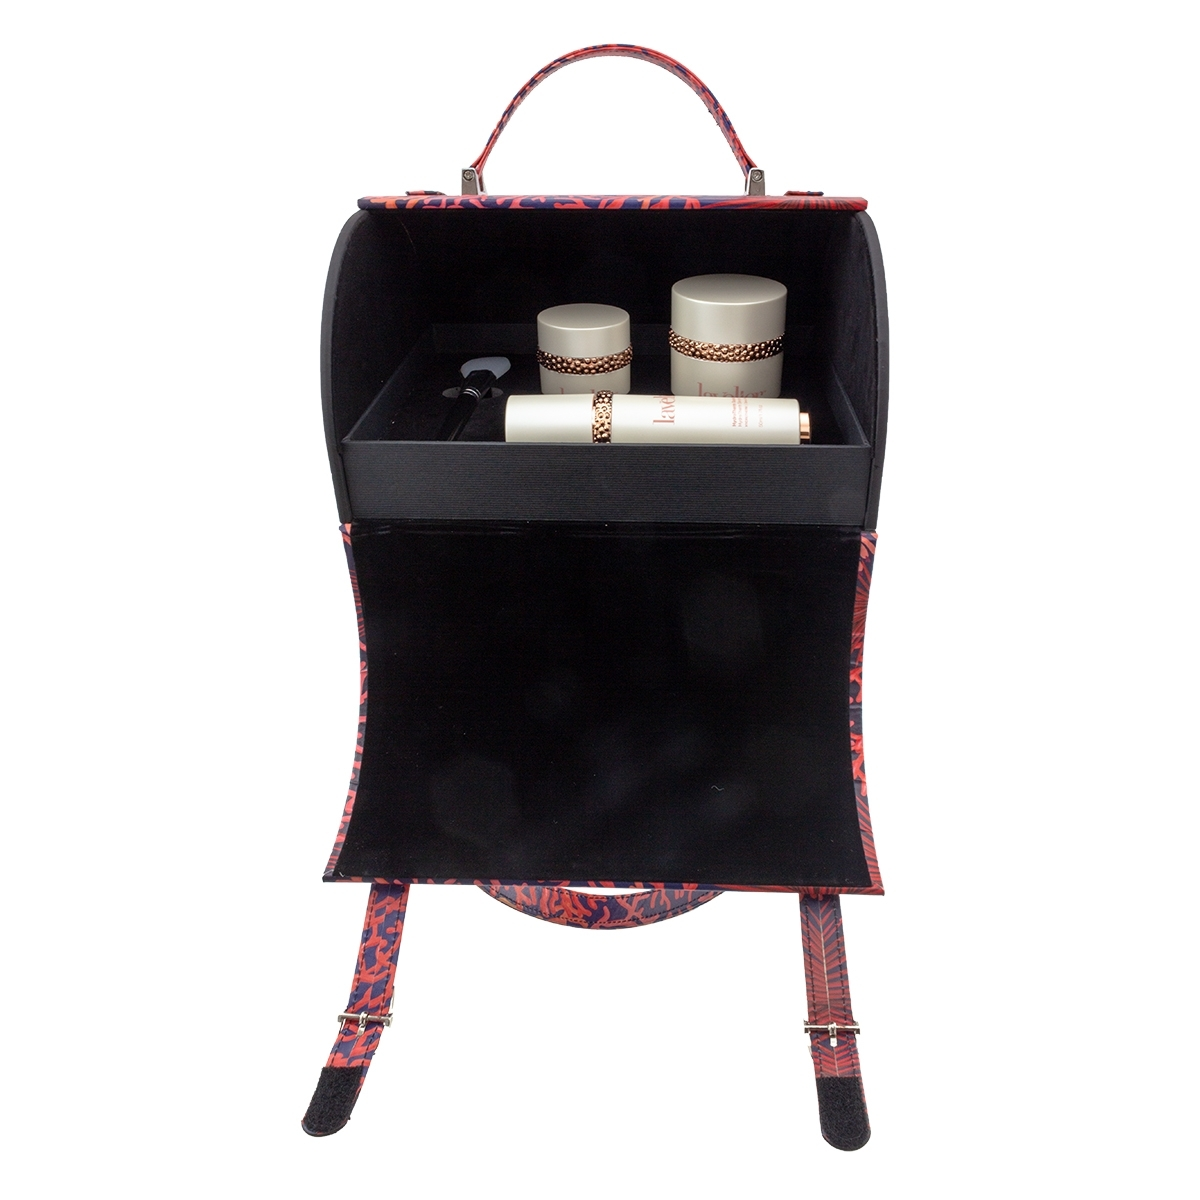 Hydrotherm Limited Edition Mini Suitcase Open